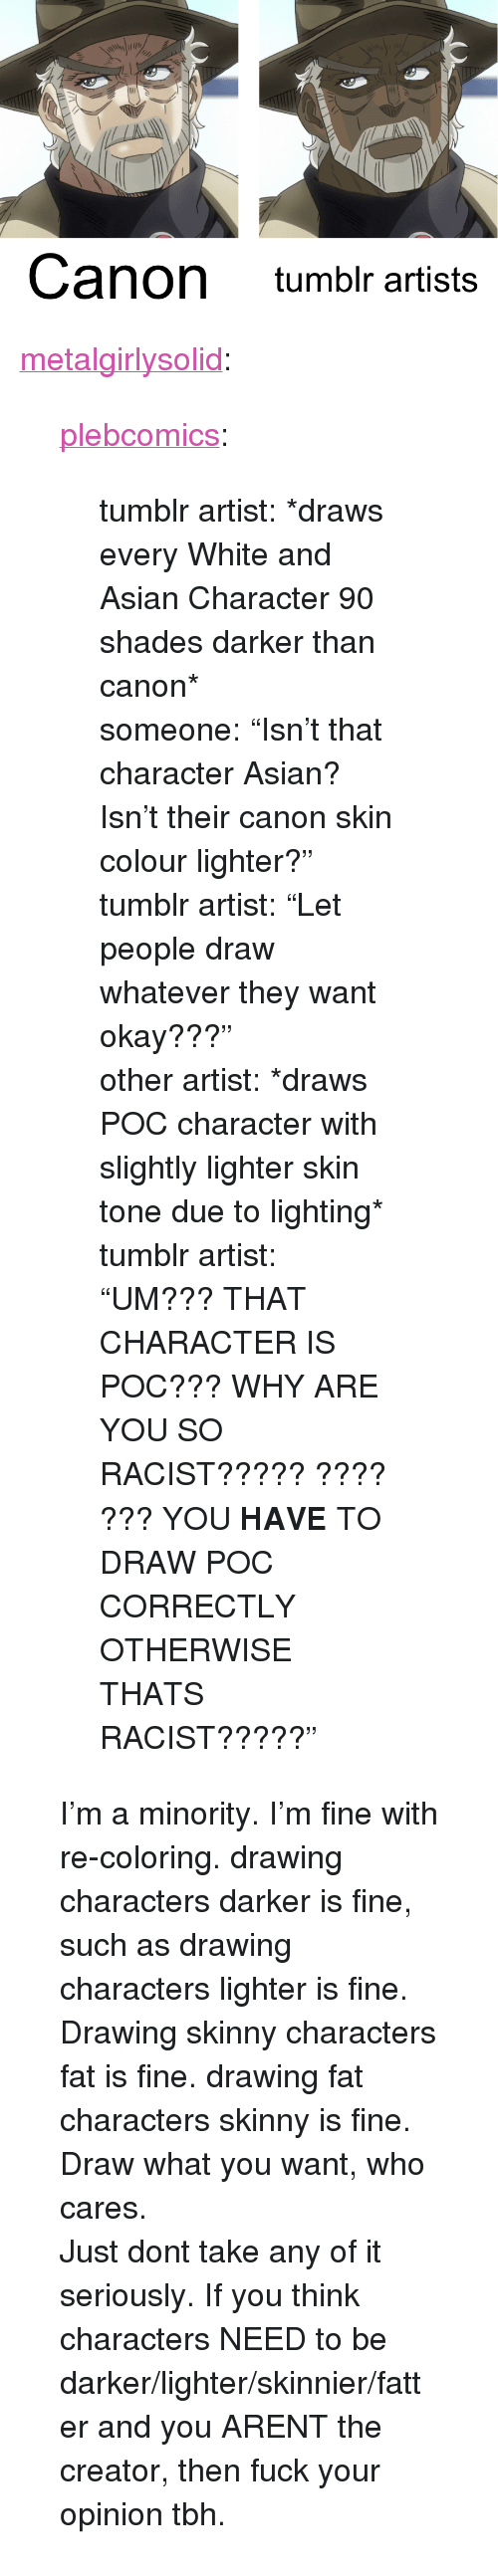 "thats racist: Canon tumblr artists <p><a href=""http://metalgirlysolid.tumblr.com/post/155281033232/plebcomics-tumblr-artist-draws-every-white"" class=""tumblr_blog"">metalgirlysolid</a>:</p> <blockquote> <p><a href=""http://plebcomics.tumblr.com/post/154834341153/tumblr-artist-draws-every-white-and-asian"" class=""tumblr_blog"">plebcomics</a>:</p> <blockquote> <p>tumblr artist: *draws every White and Asian Character 90 shades darker than canon*</p> <p>someone: ""Isn't that character Asian? Isn't their canon skin colour lighter?""</p> <p>tumblr artist: ""Let people draw whatever they want okay???""</p> <p>other artist: *draws POC character with slightly lighter skin tone due to lighting*</p> <p>tumblr artist: ""UM??? THAT CHARACTER IS POC??? WHY ARE YOU SO RACIST????? ???? ??? YOU <strong>HAVE</strong> TO DRAW POC CORRECTLY OTHERWISE THATS RACIST?????""</p> </blockquote> <p>I'm a minority. I'm fine with re-coloring. drawing characters darker is fine, such as drawing characters lighter is fine. Drawing skinny characters fat is fine. drawing fat characters skinny is fine. Draw what you want, who cares.</p> <p>Just dont take any of it seriously. If you think characters NEED to be darker/lighter/skinnier/fatter and you ARENT the creator, then fuck your opinion tbh.</p> </blockquote>"